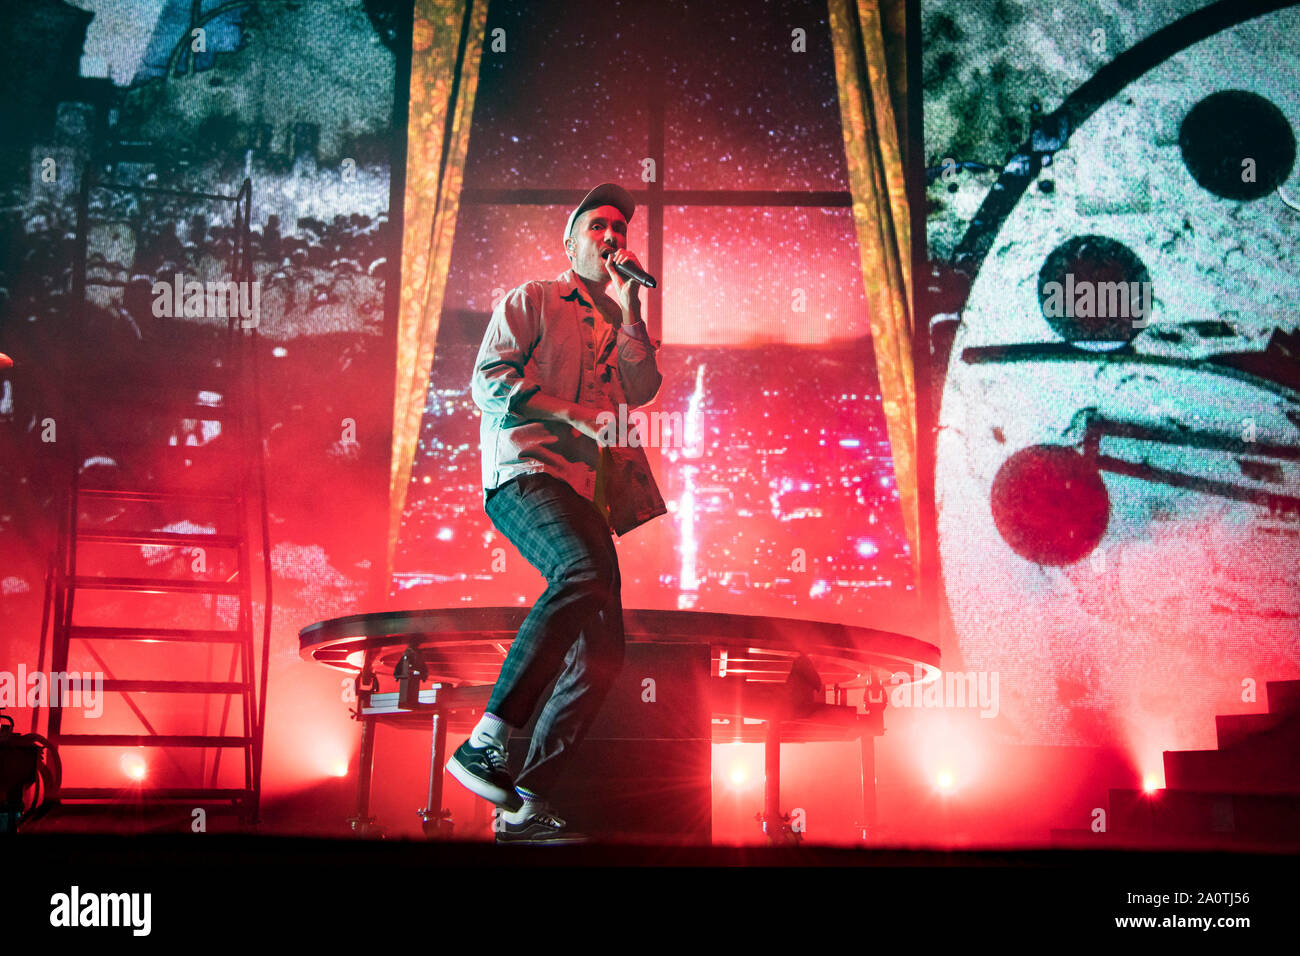 Lead singer of British Indie pop band, Bastille, Dan Smith performs a sold out show in Toronto. Stock Photo